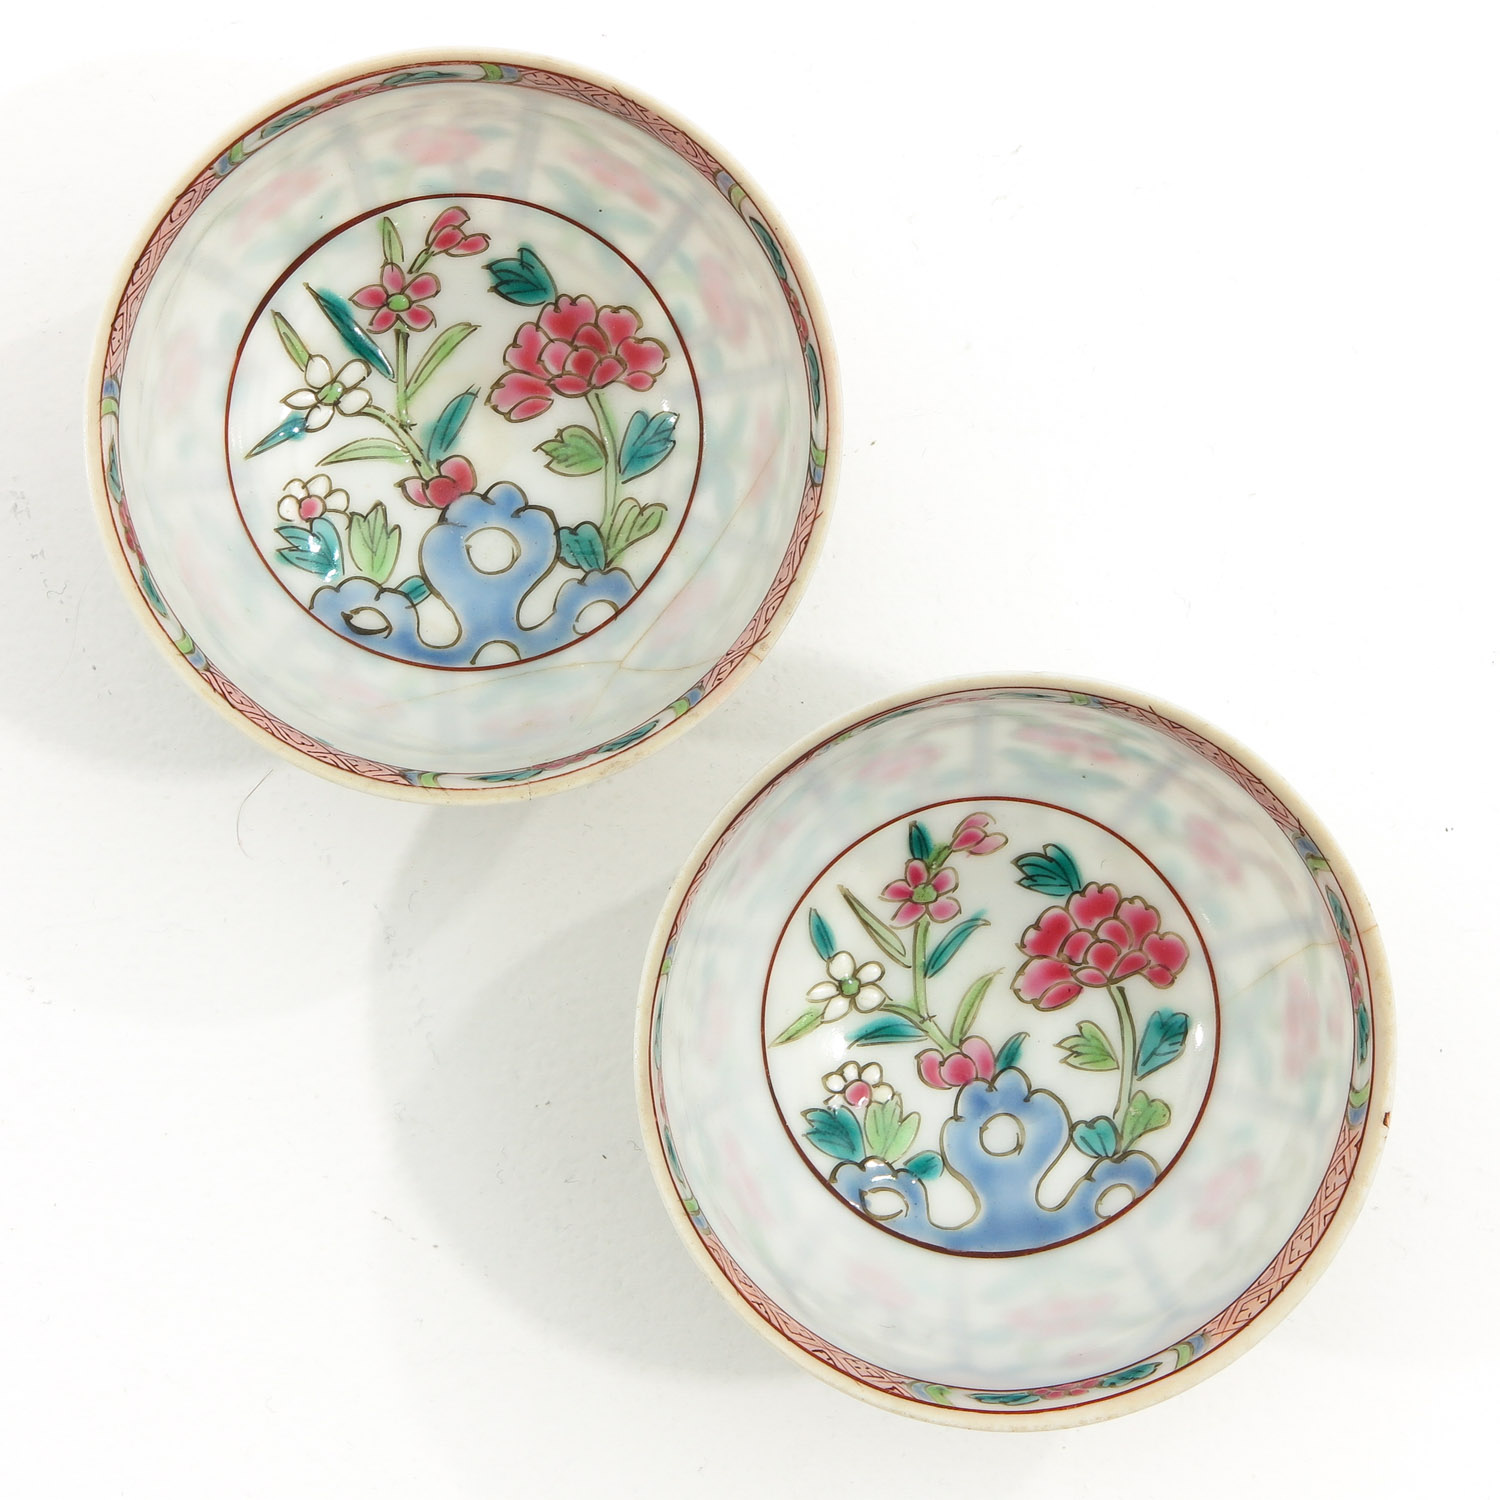 A Collection of Cups and Saucers - Image 5 of 10